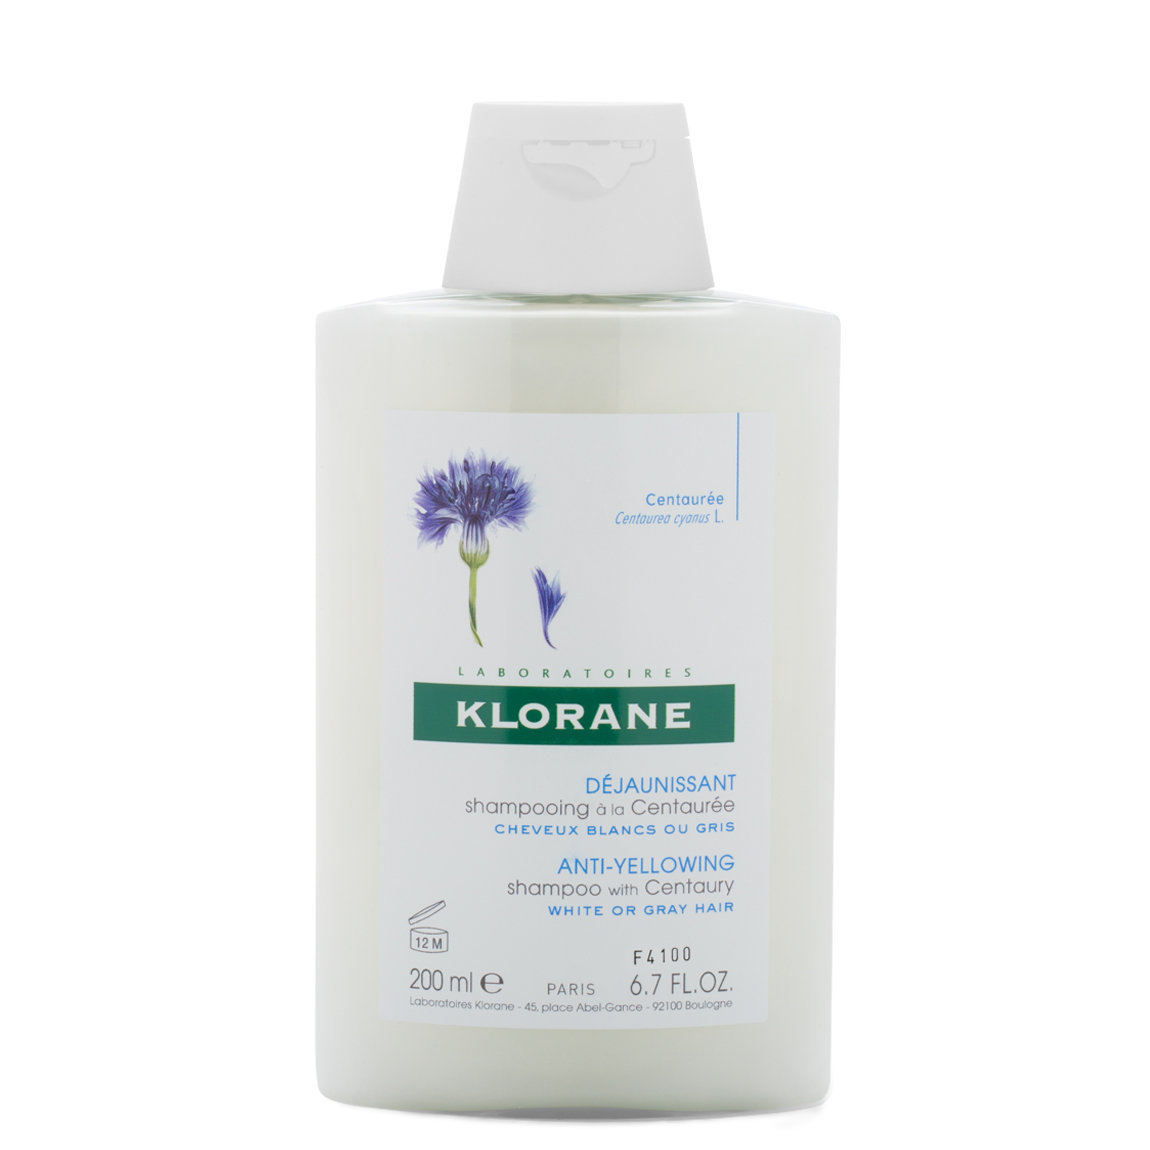 Klorane Shampoo with Centaury product swatch.